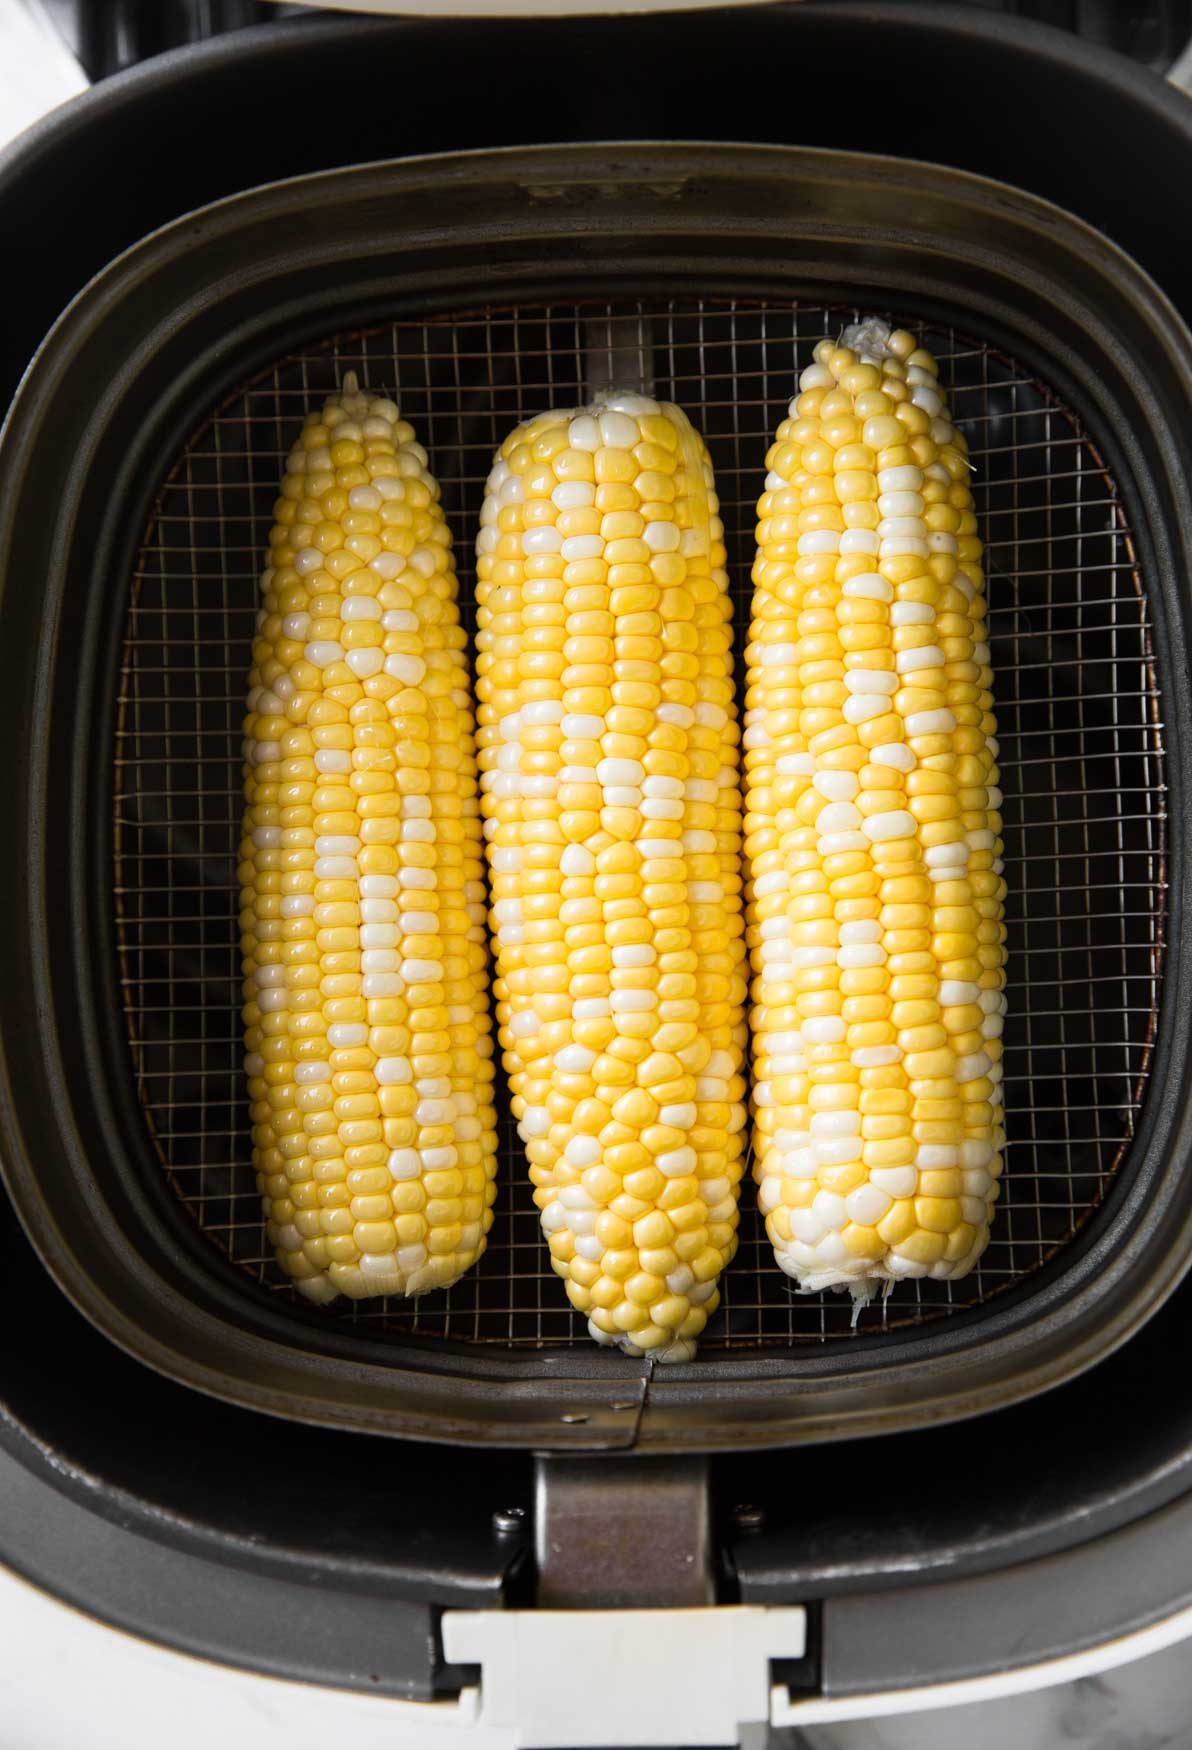 Corn on the cob placed in Air Fryer Basket.